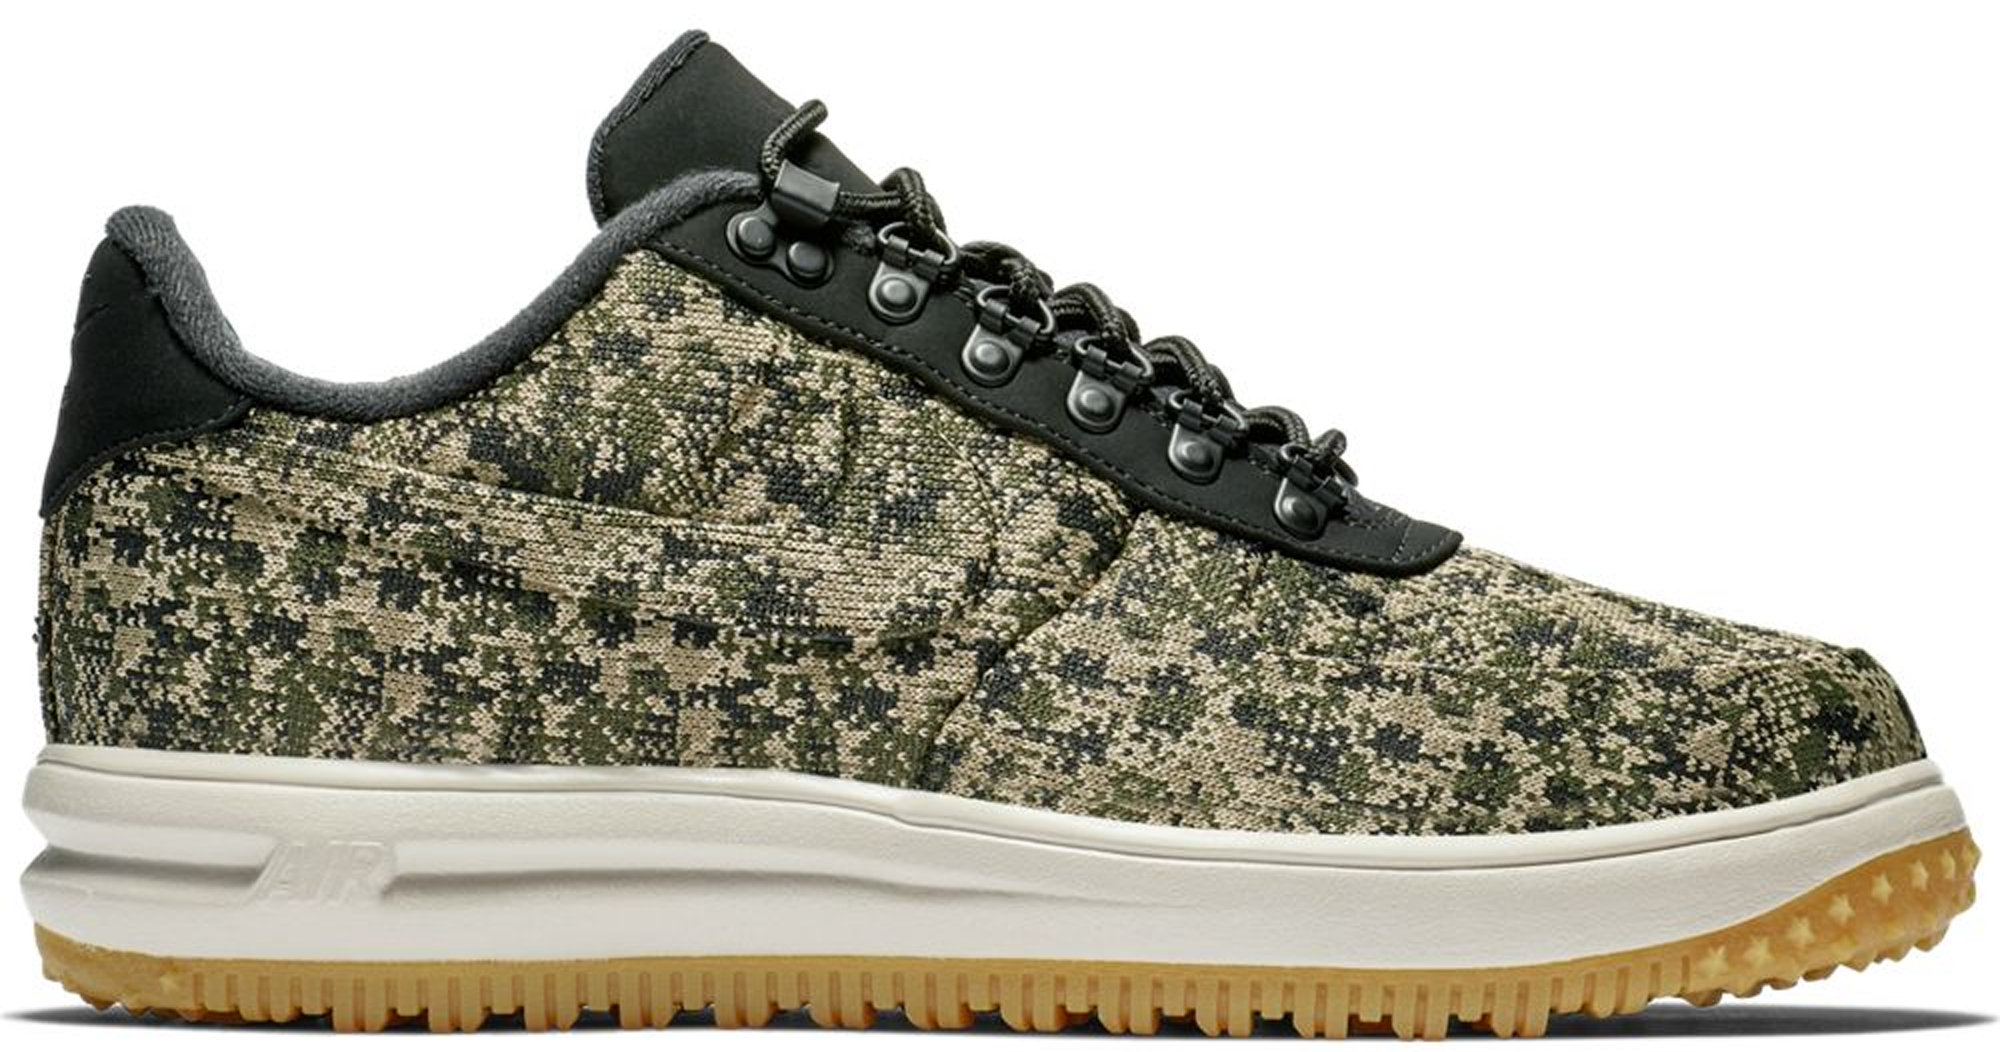 Lunar Force 1 Duckboot Low Textile Canteen